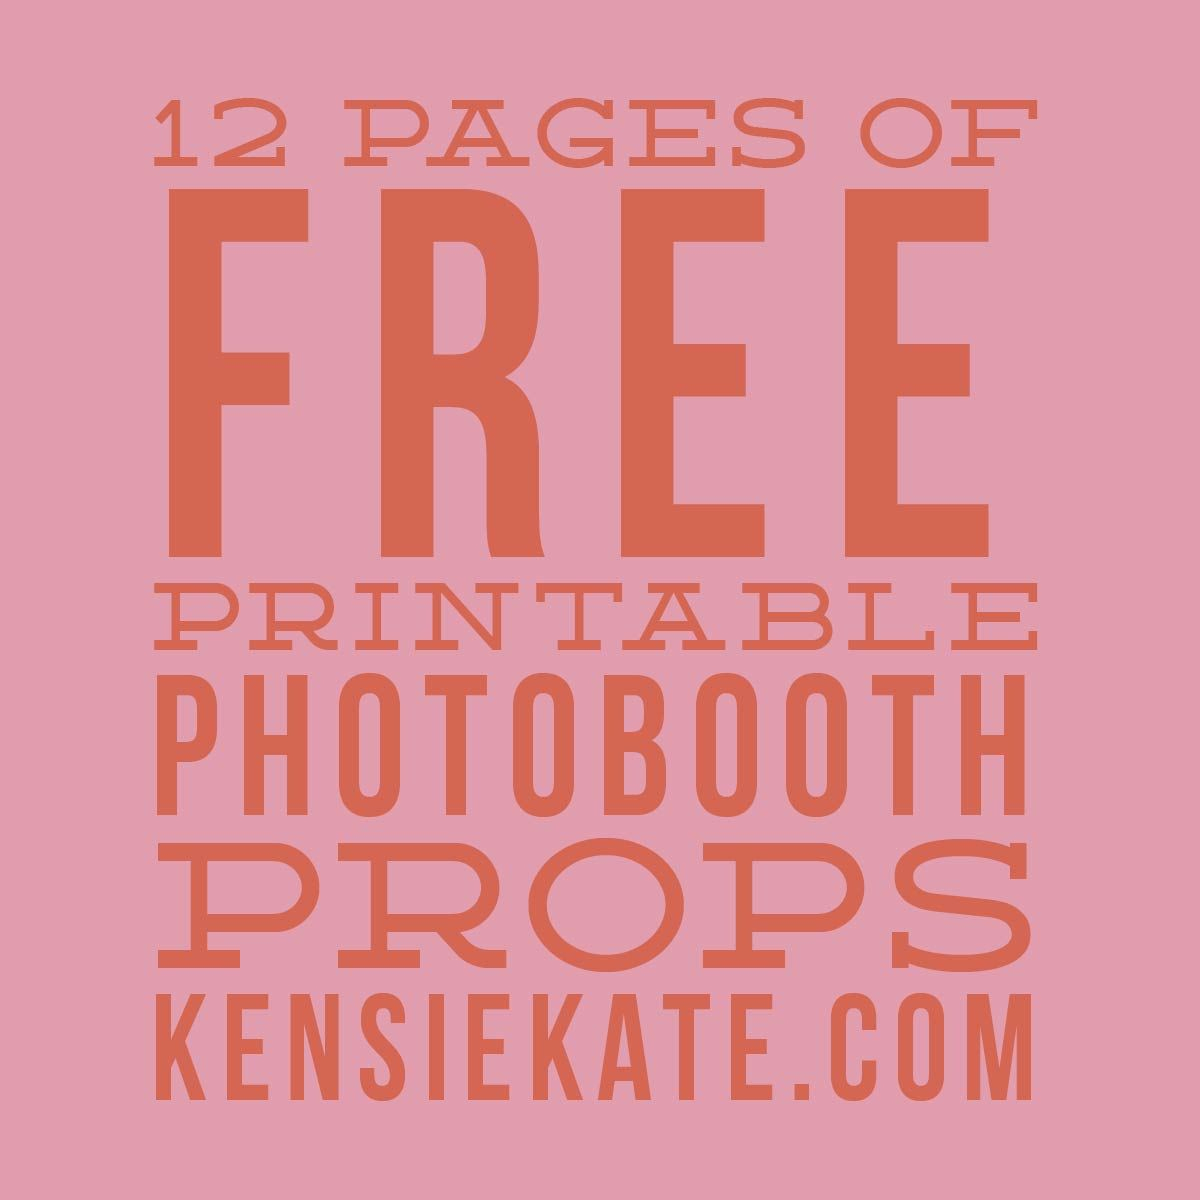 12 Pages Of Free Printable Photobooth Props | An Honorable Maid - Printable 90S Props Free